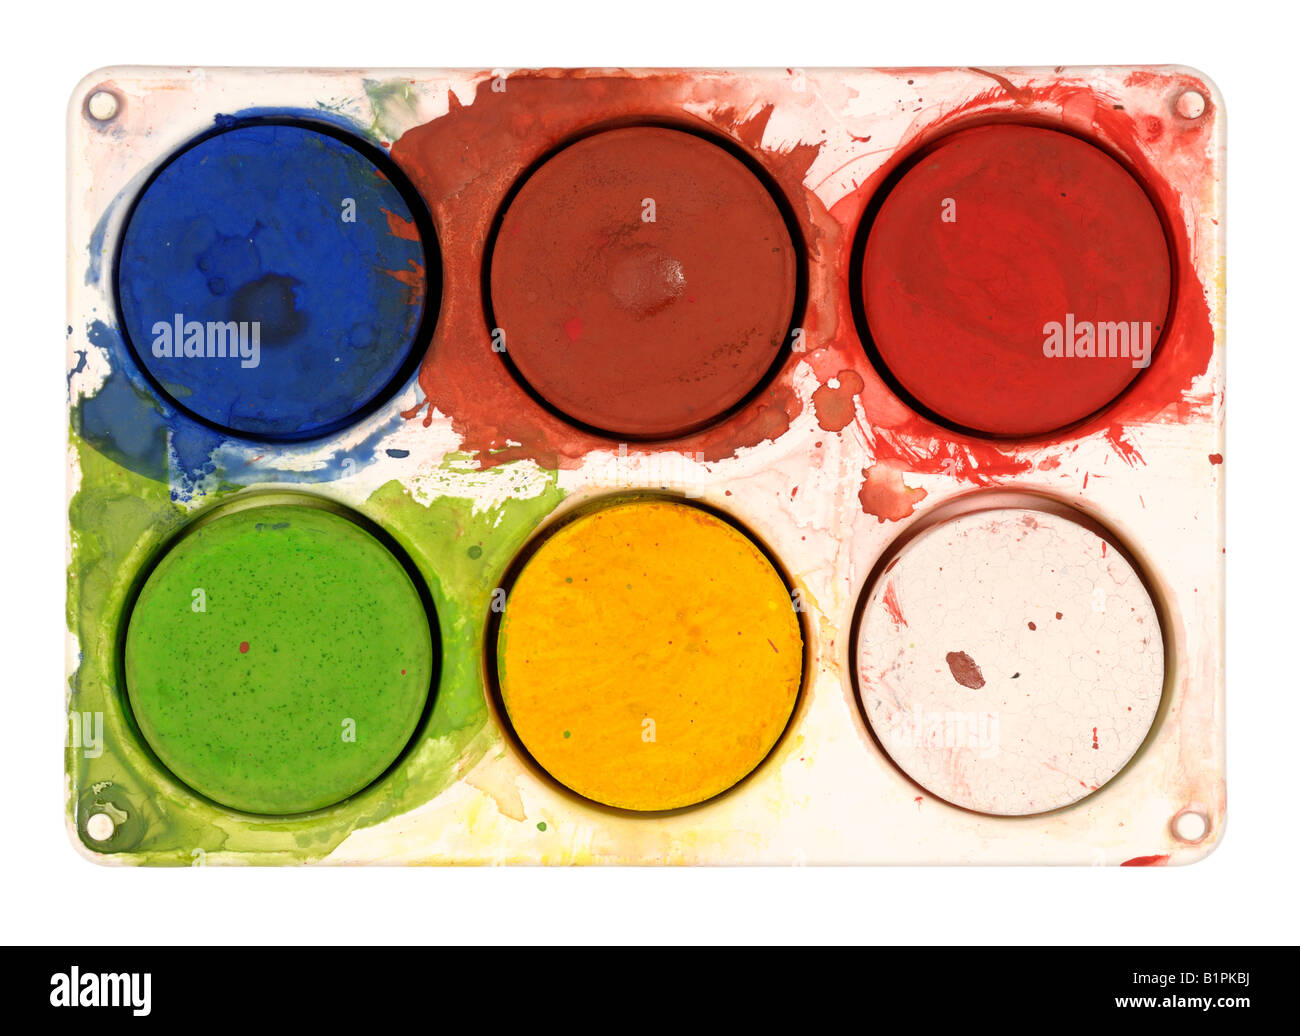 Palette de l'artiste Photo Stock